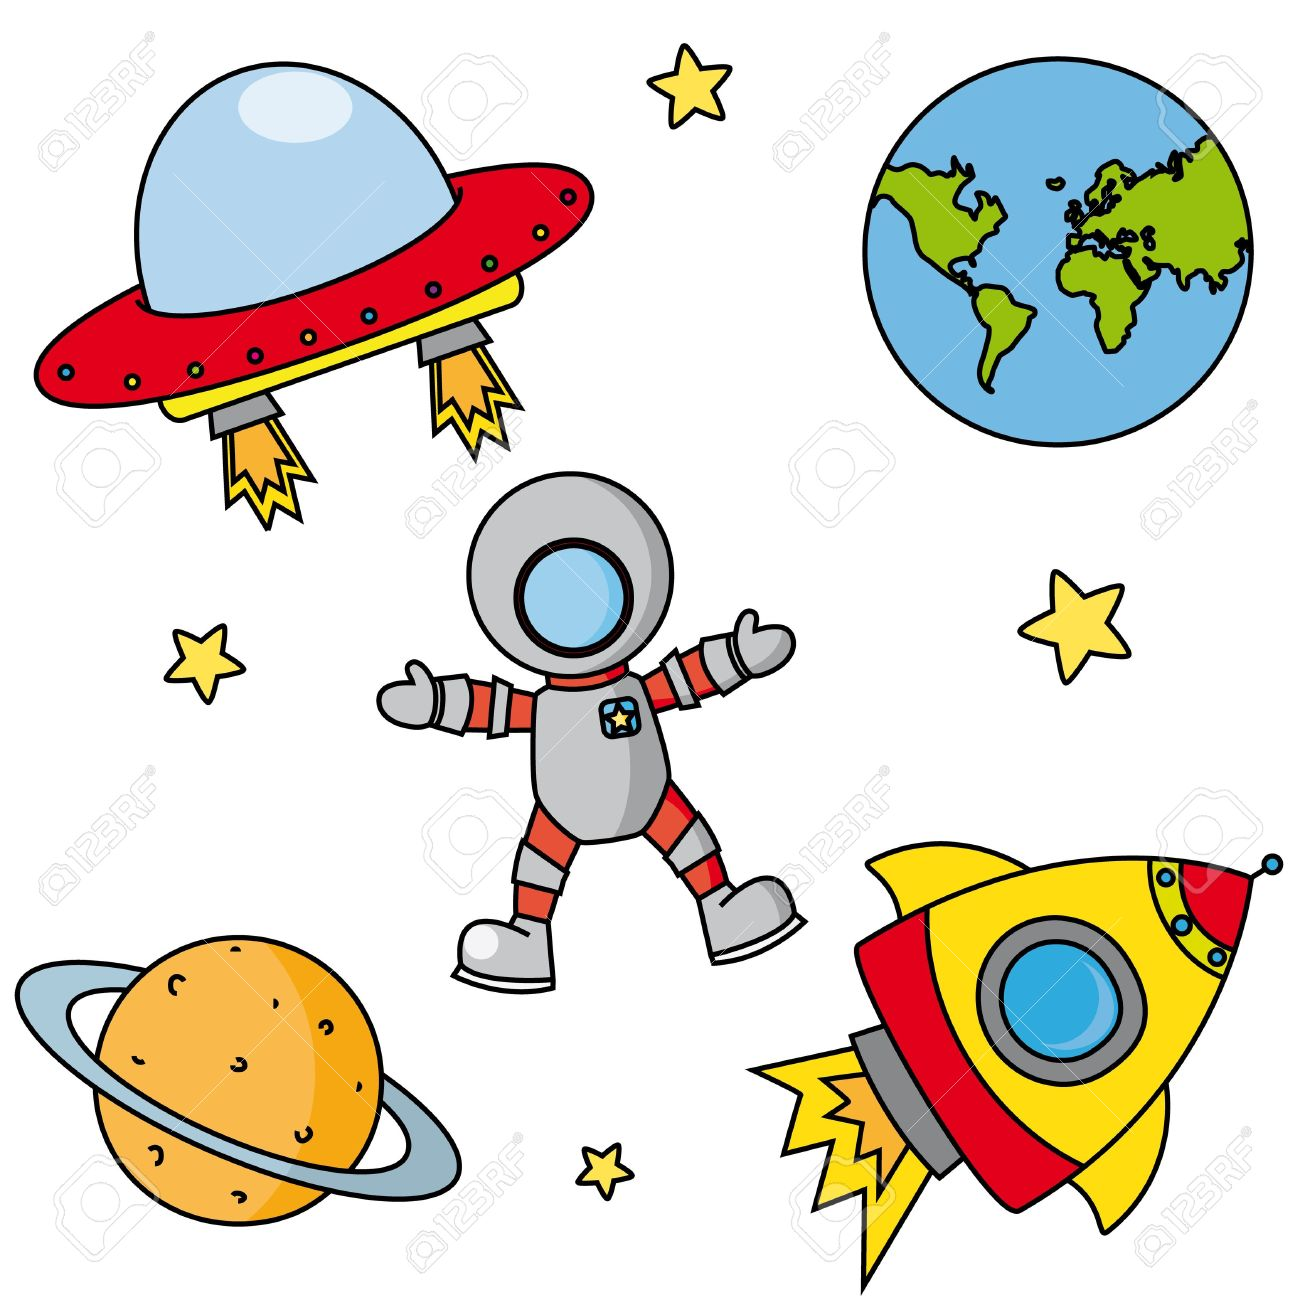 Free download best on. Astronomy clipart animated